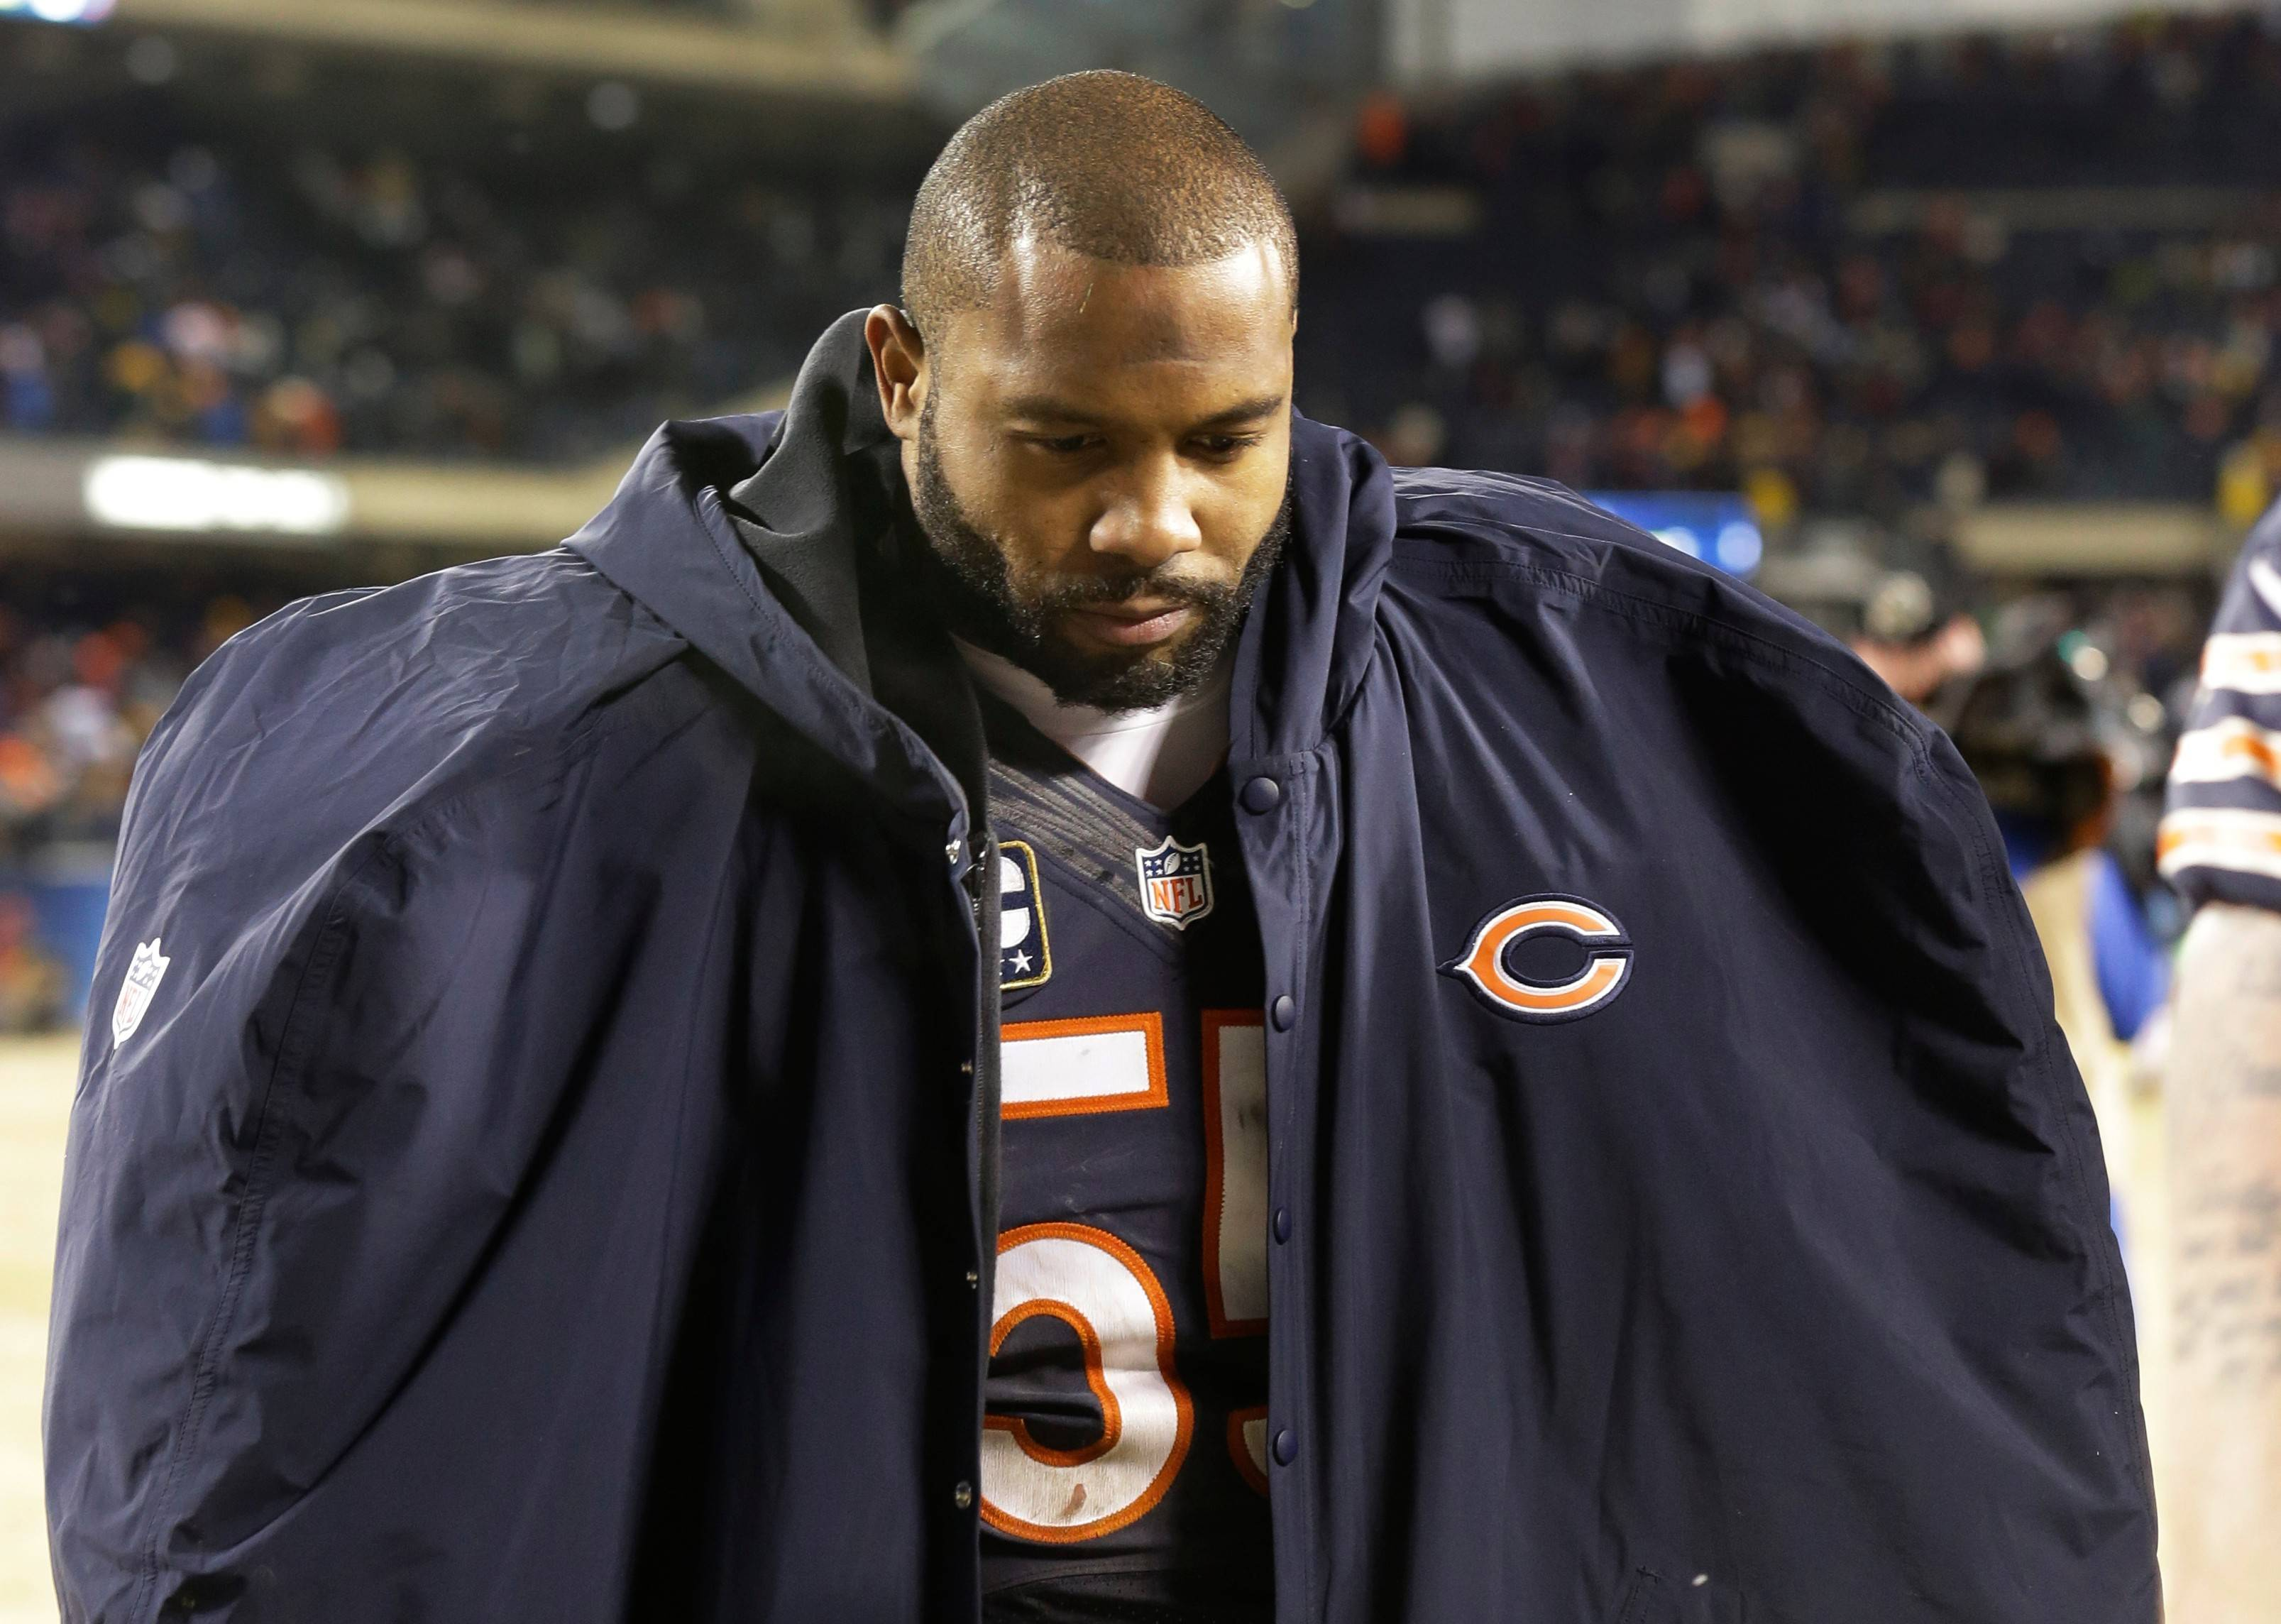 Bears linebacker Lance Briggs went on the offensive Wednesday when discussing his excused absence from Monday's practice.